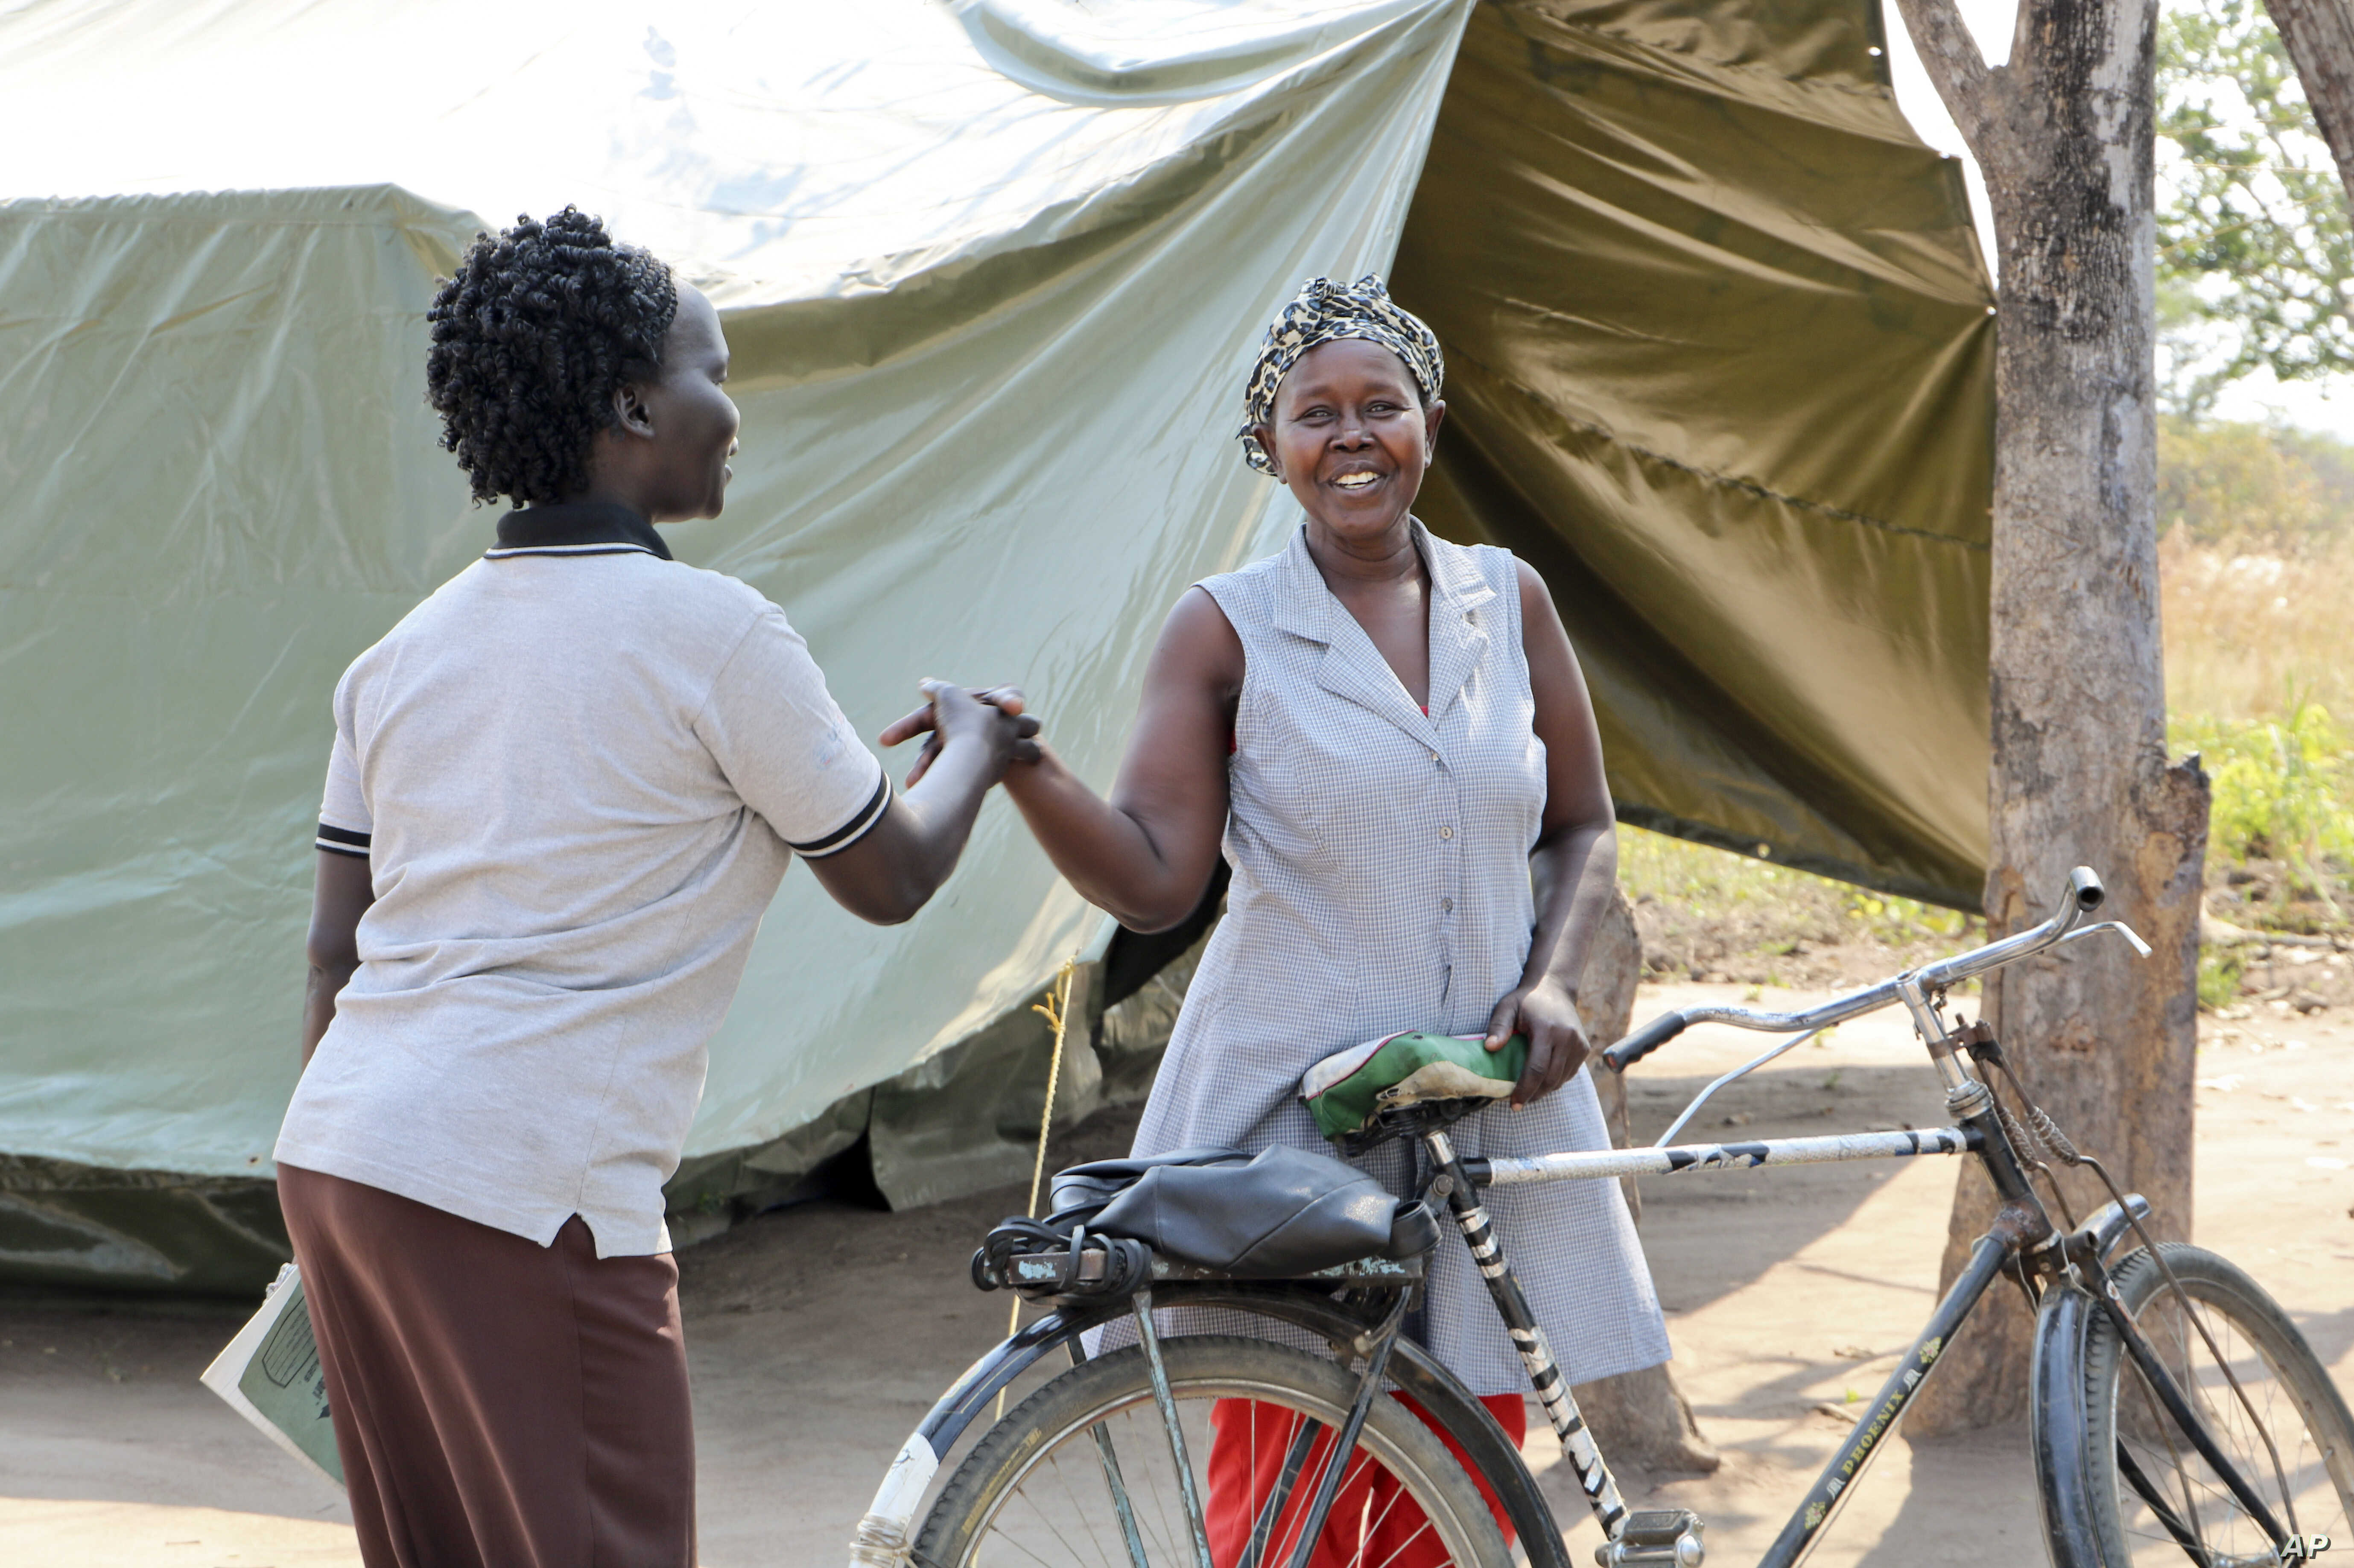 FILE - In this photo taken Jan. 7, 2019, residents greet each other in the Korijo displaced persons camp in the opposition-held part of Kajo Keji county, along the Ugandan border, where a very few people have started to return, in South Sudan. Since ...